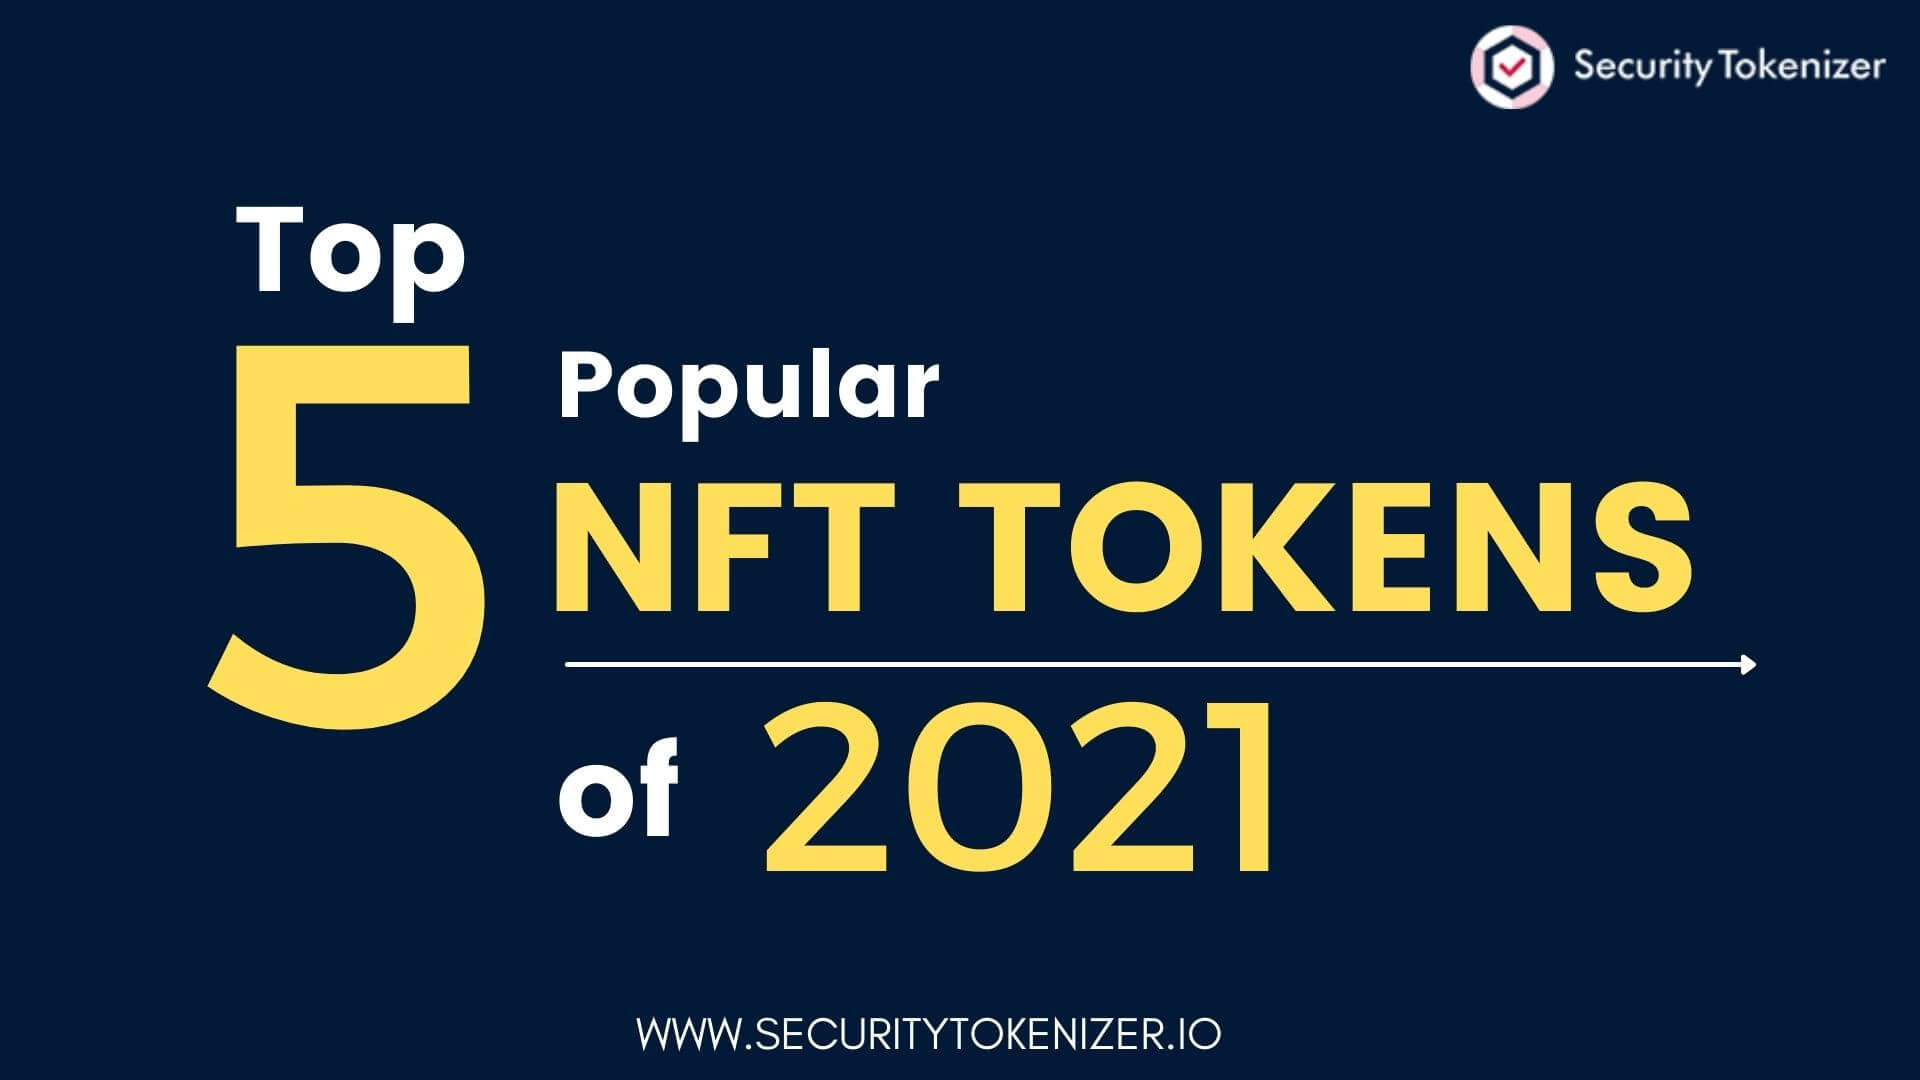 Top 5 Popular Non-Fungible (NFT) Tokens of 2021